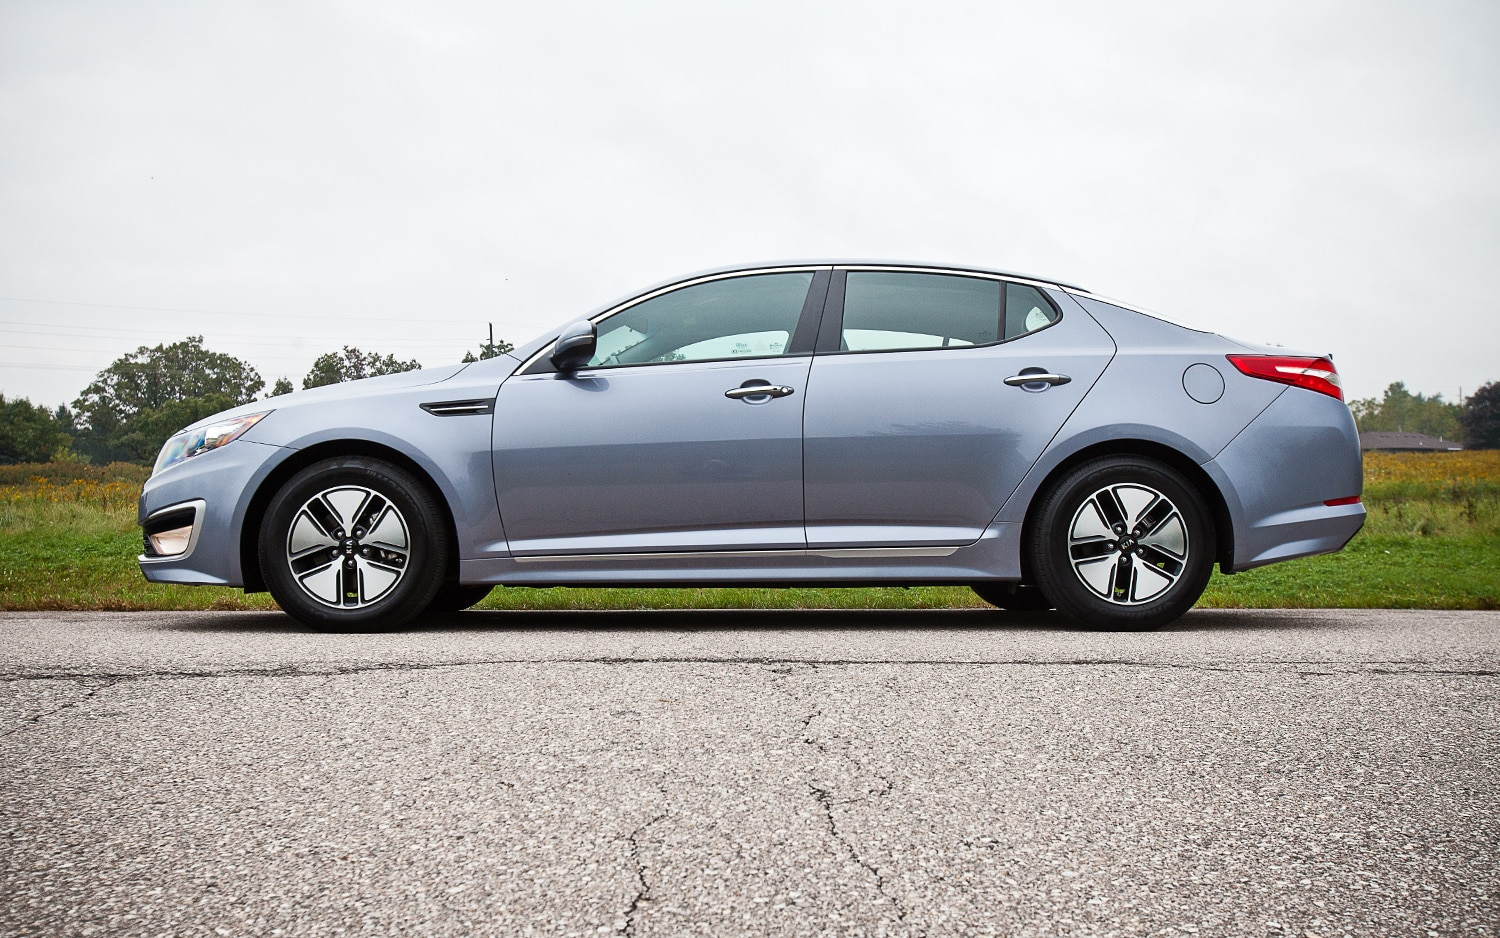 http://st.automobilemag.com/uploads/sites/11/2011/11/2011-kia-optima-hybrid-left-side-view.jpg